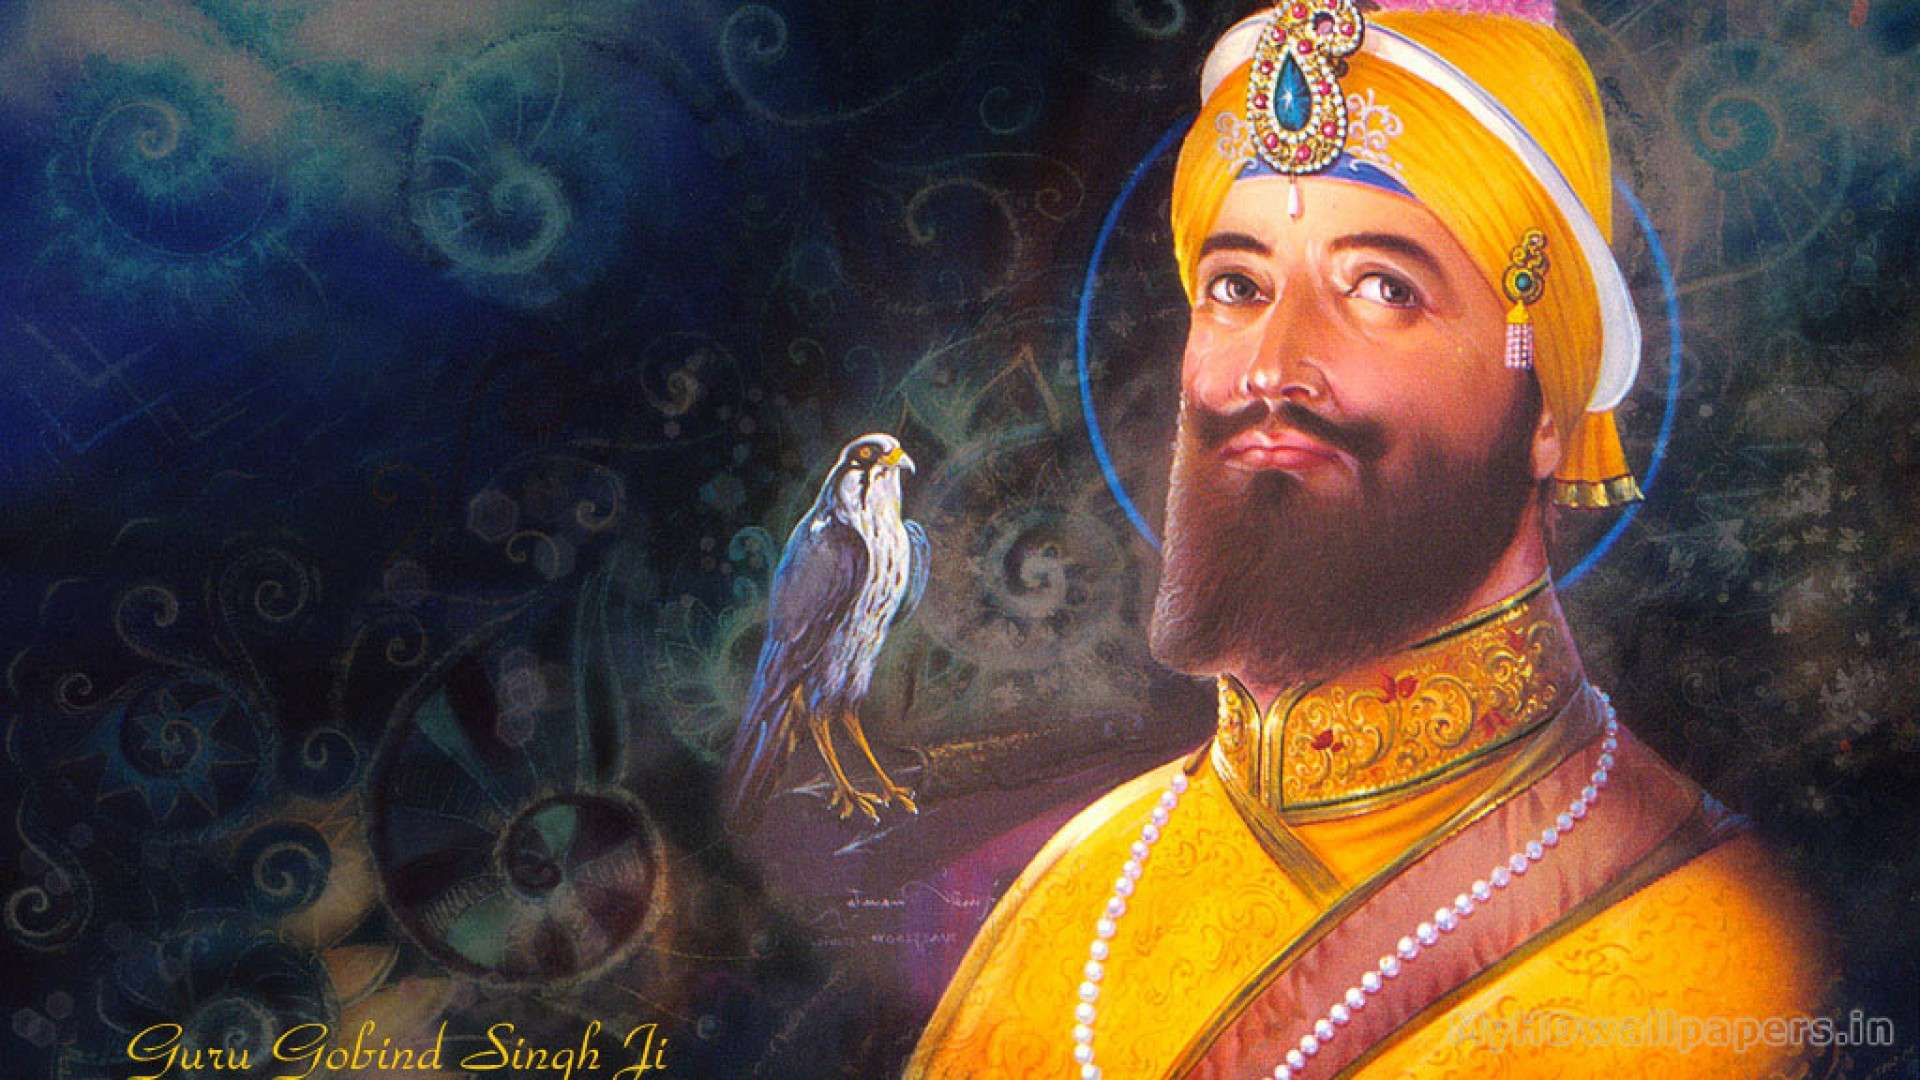 guru gobind singh ji Birth and early life in patna guru gobind singh, the only child of guru teg bahadur and his wife gujri, was named gobind rai at birth guru teg bahadur settled his family in patna under the protection of the local raja while he toured assam and bengal, and was not present at the birth.